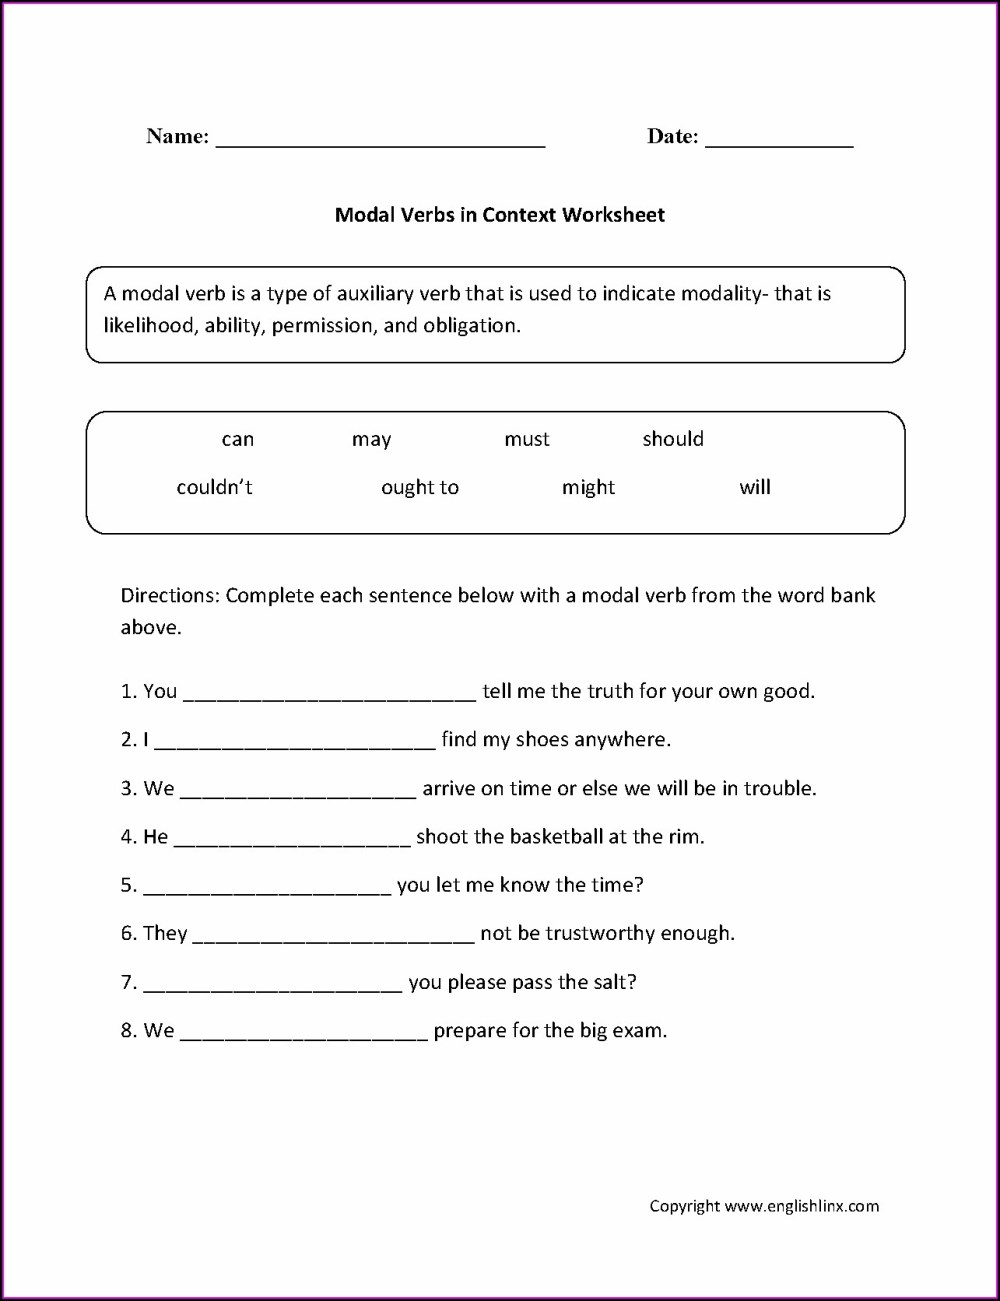 medium resolution of Worksheet On Present Tense For Class 7   Printable Worksheets and  Activities for Teachers